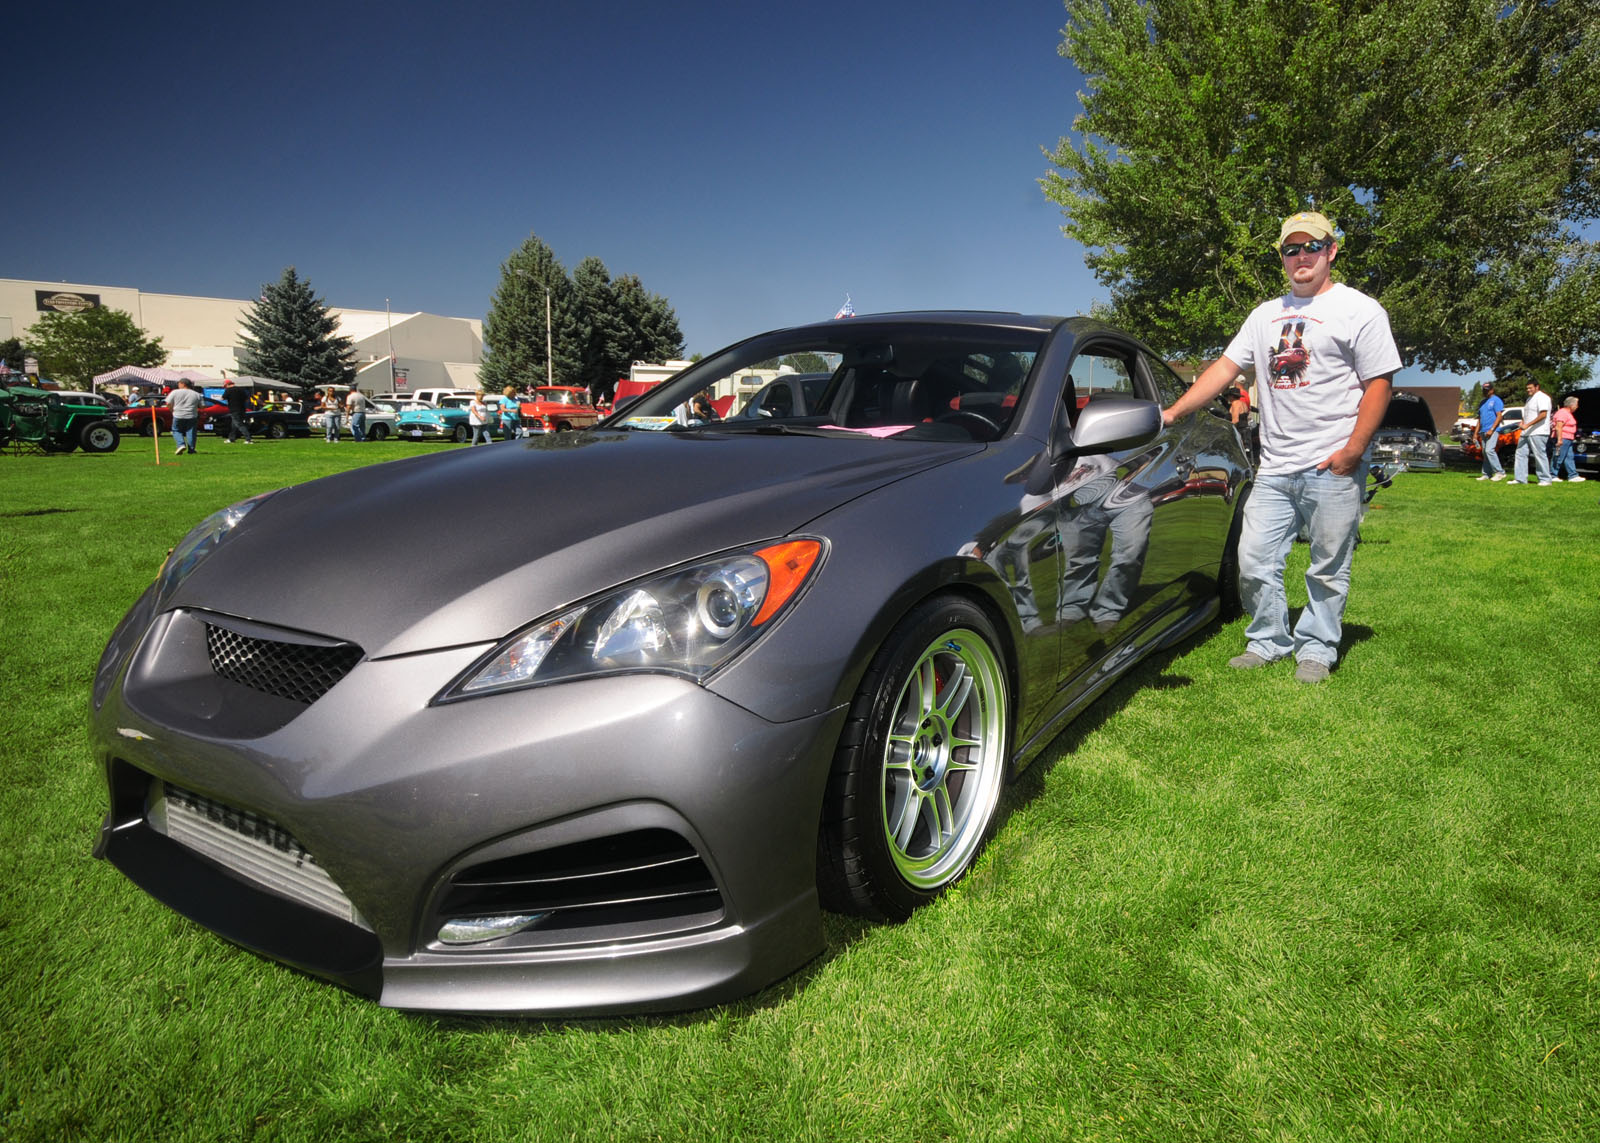 2010 hyundai genesis coupe turbo track for sale elko nevada. Black Bedroom Furniture Sets. Home Design Ideas